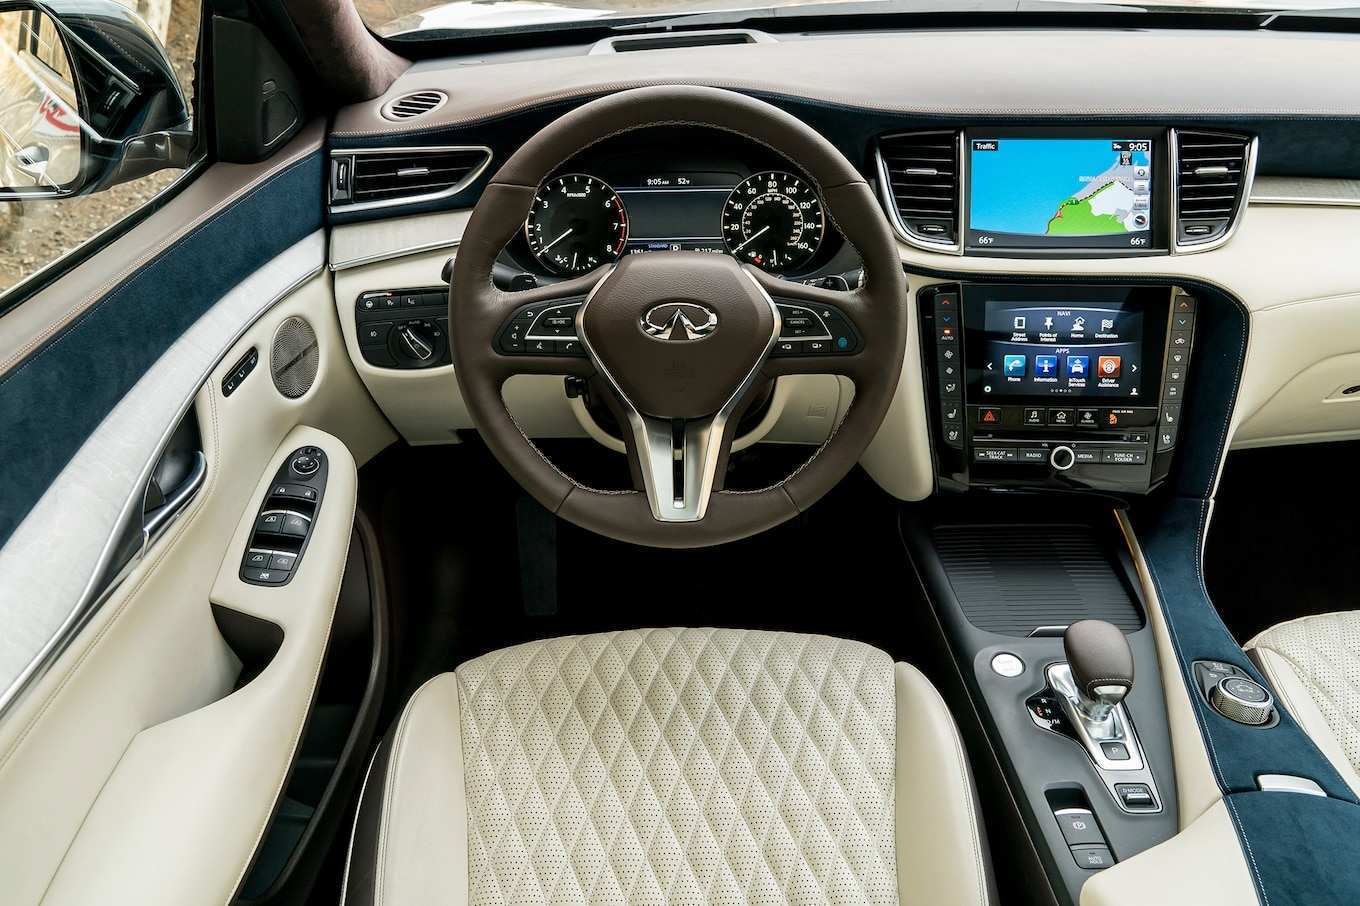 91 Great 2019 Infiniti Qx50 Engine Specs Wallpaper with 2019 Infiniti Qx50 Engine Specs